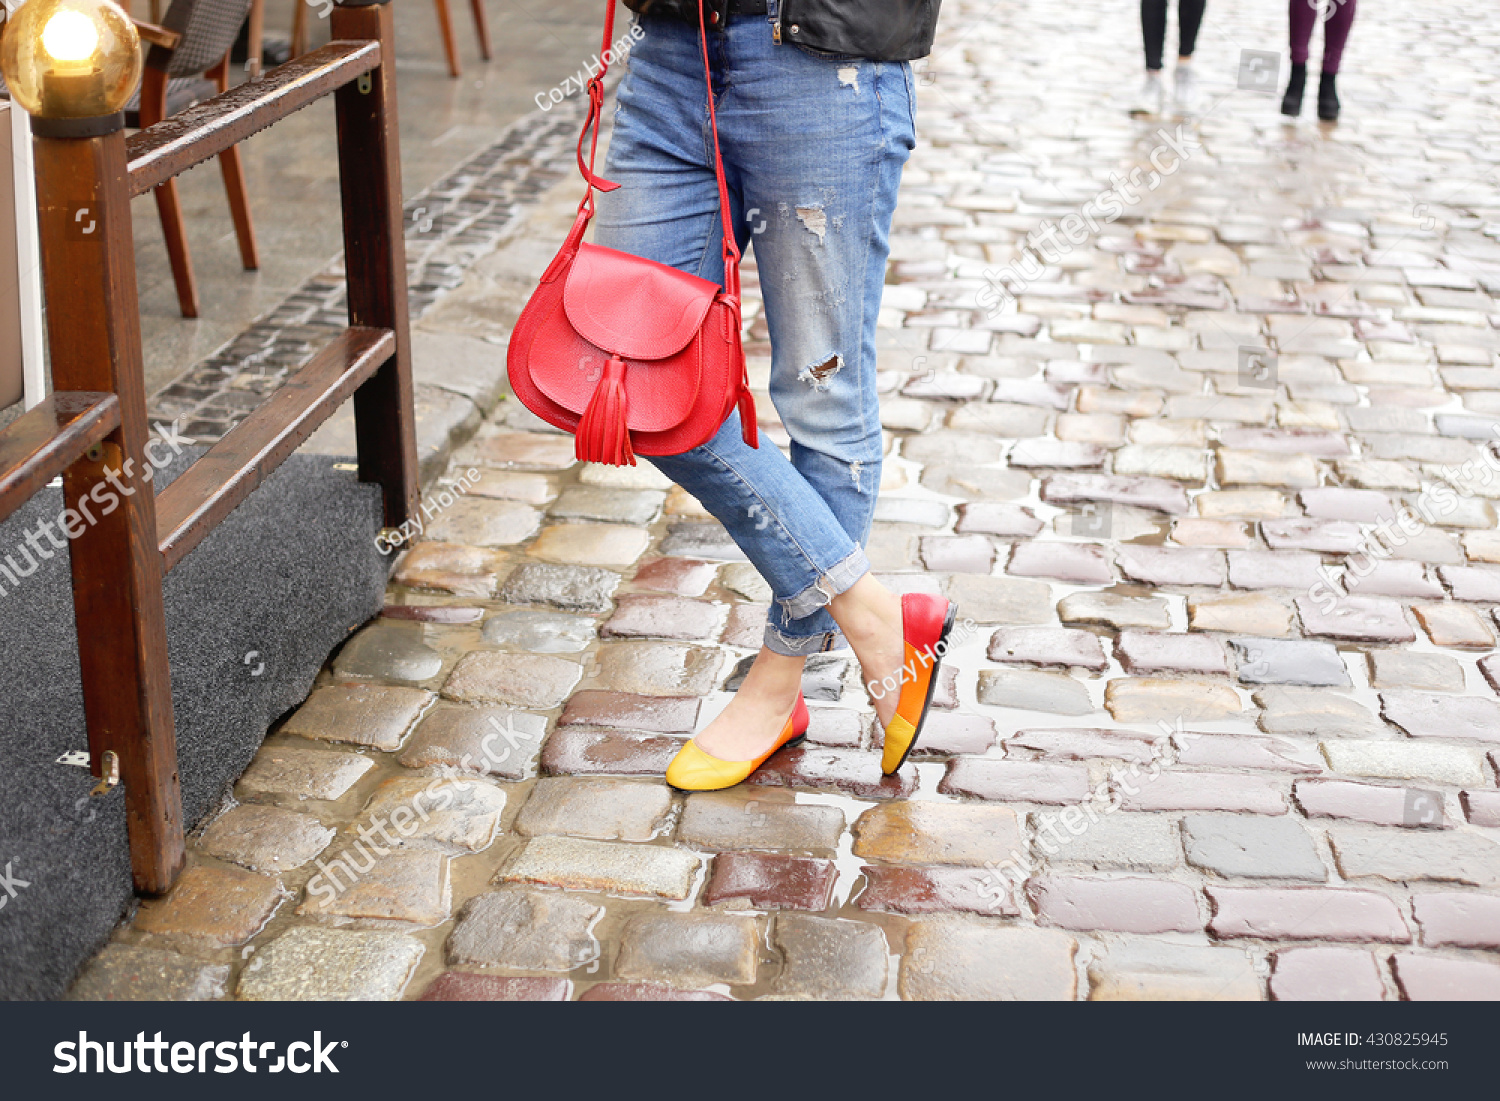 Woman in stylish blue ripped jeans walking down the rainy wet city street with bright red leather handbag and colored ballet flats Street fashion look Legs of a young girl on the wet pavement